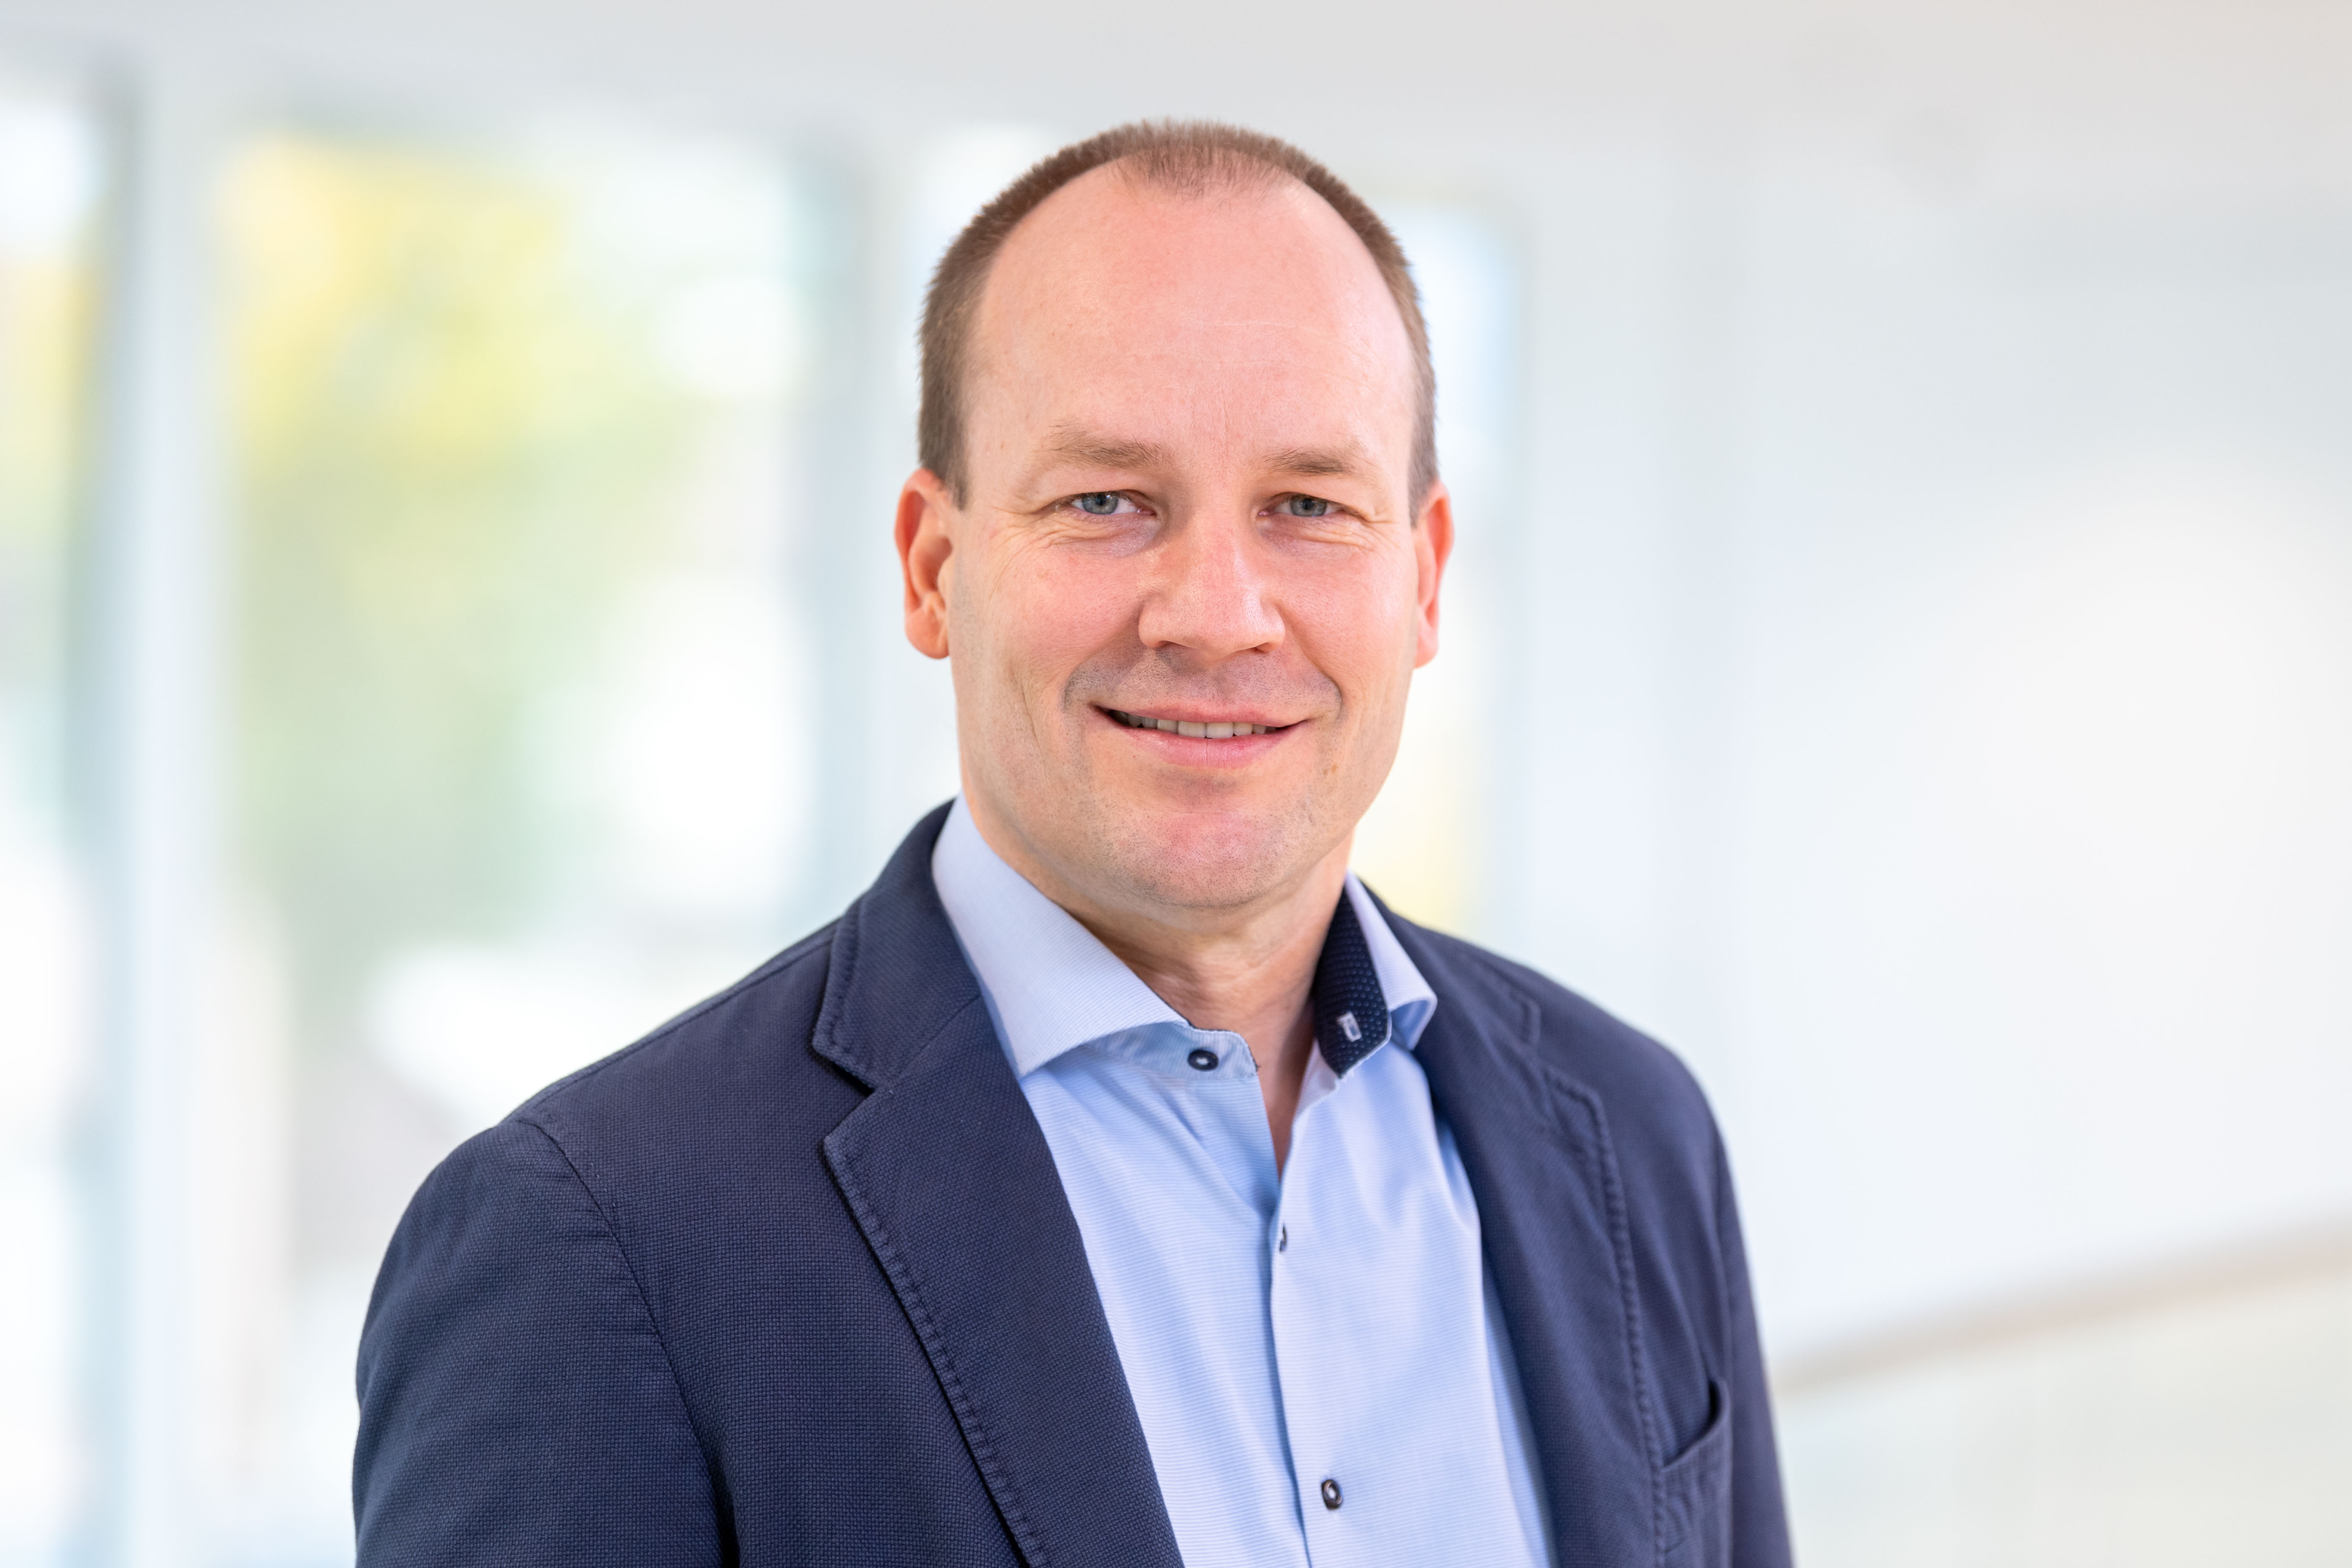 Dr. Arne Flemming, head of supply chain management at Bosch